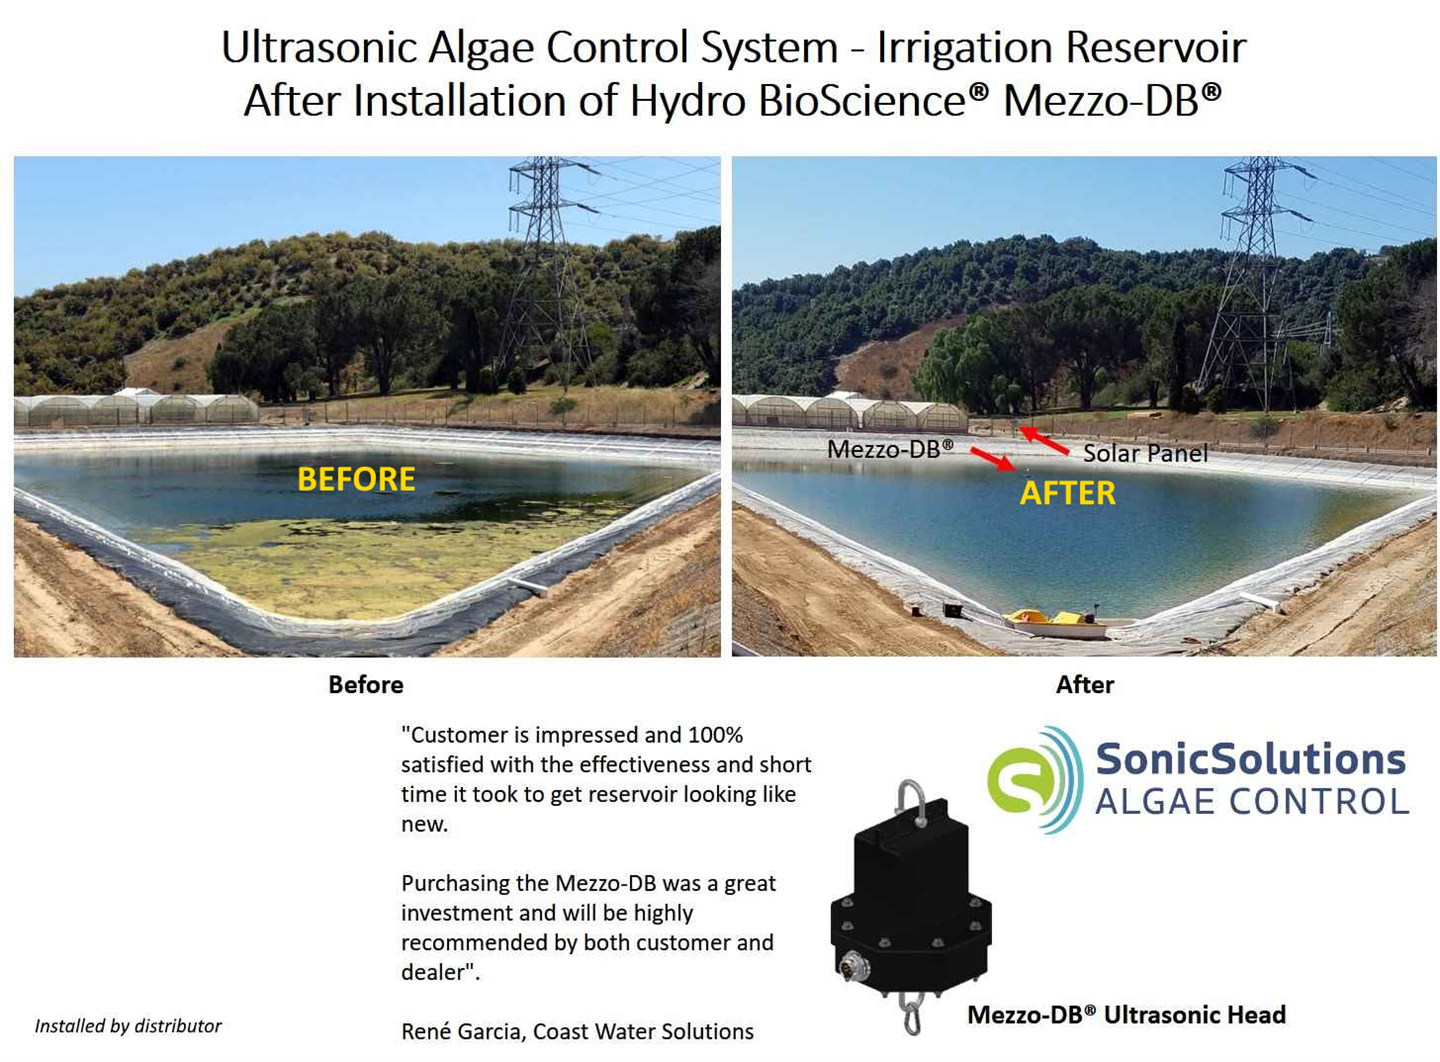 SonicSolutions Algae Control LLC (SSAC)